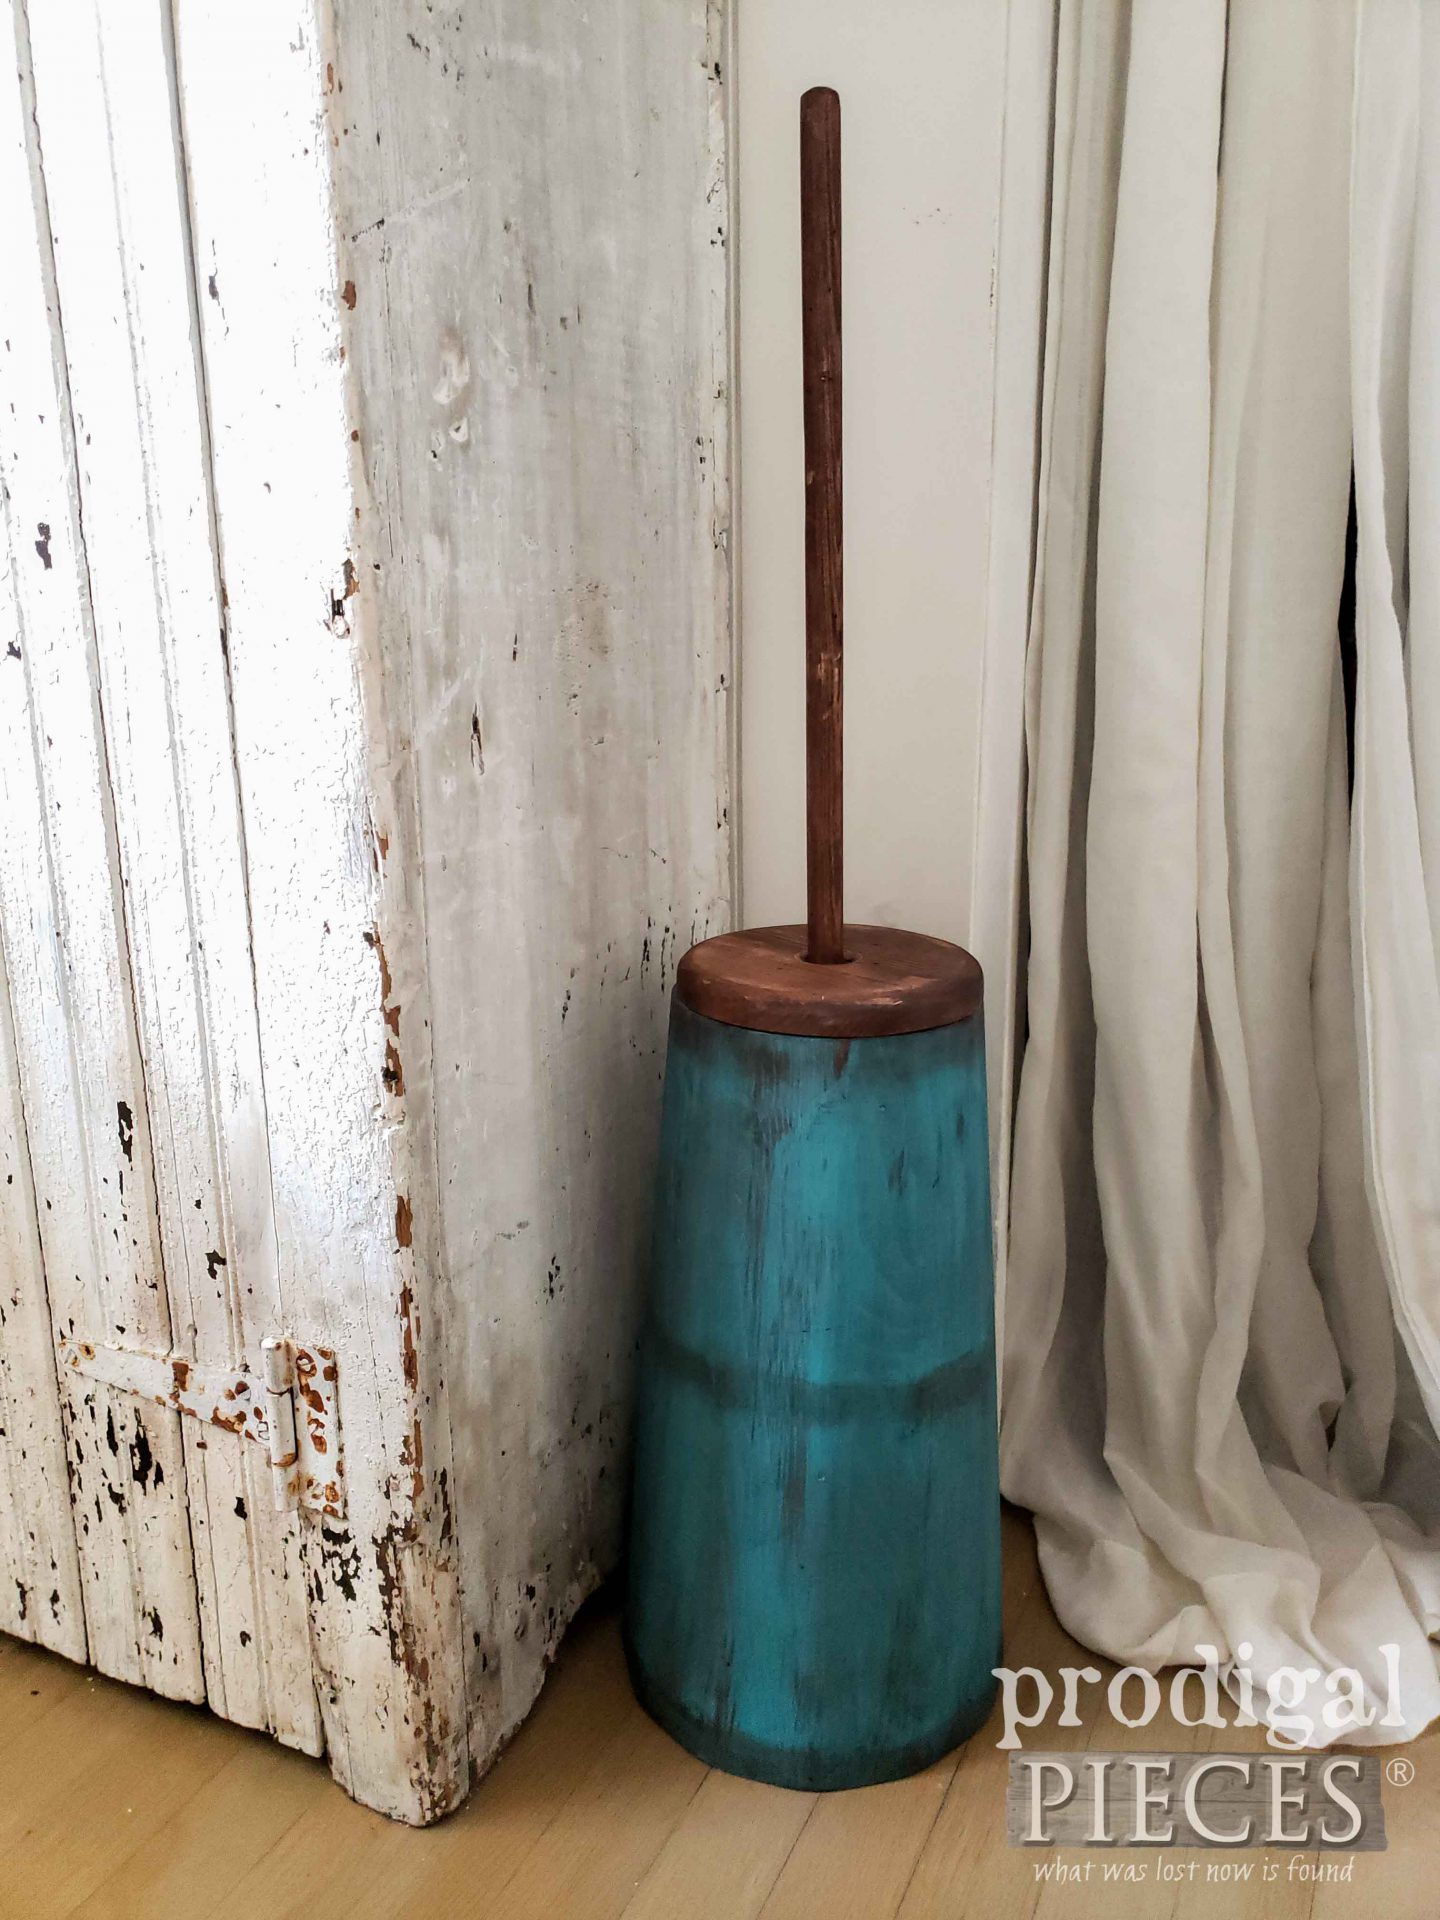 Rustic Farmhouse Butter Churn in Aqua Blue Paint by Larissa of Prodigal Pieces | prodigalpieces.com #prodigalpieces #home #farmhouse #homedecor #blue